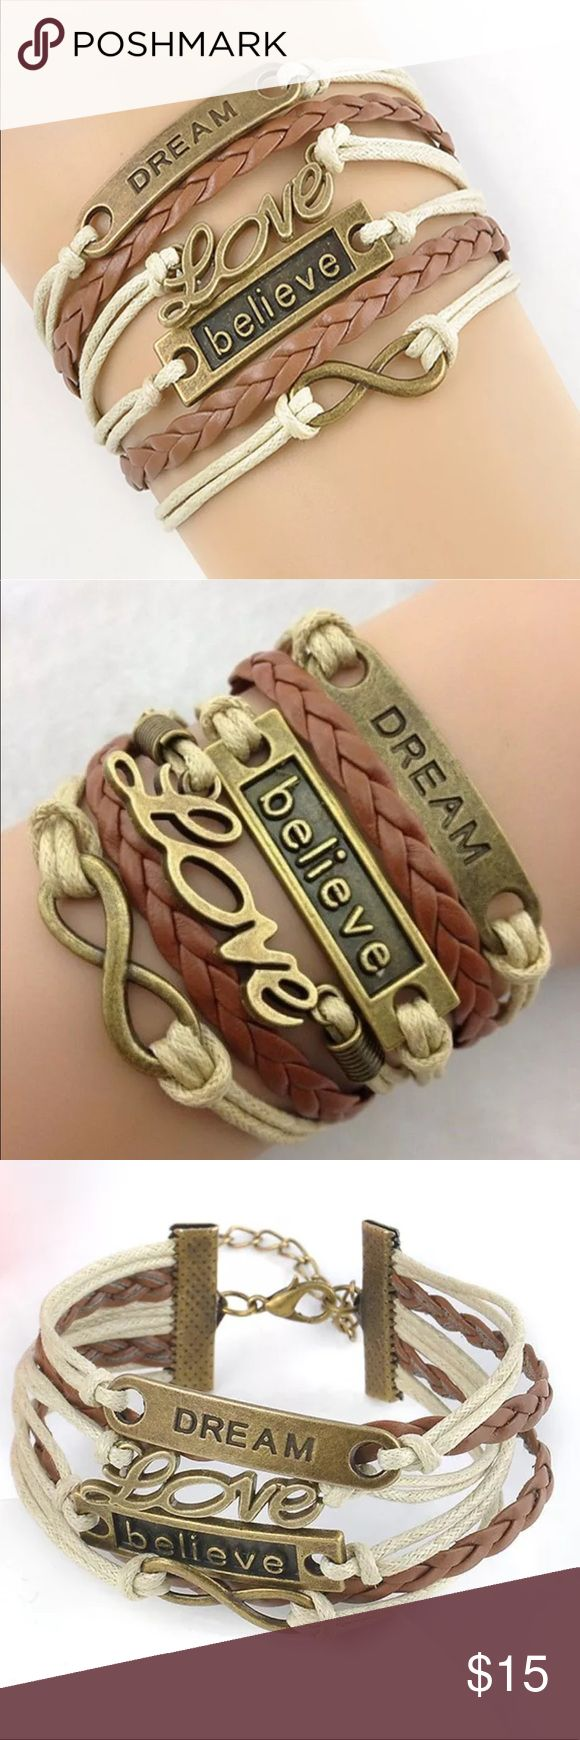 New✨ Dream, Love, Believe, Infinity Bracelet 😍✨ ✨ Fashion Jewelry ✨ Alloy, Vintage Gold Plated, PU Leather   🔸Brand New✨ 🔸PRICE IS FIRM- already listed at lowest price  🔸If you want to save please look into bundling  🔸In Stock 🔸No Trades 🔸Will ship within 24- 48 hours Monday-Friday  🚫Please -NO- Offers on items priced $10 and under AND ON SALE ITEMS‼️  🚫Serious Inquiries Only❣️  🔹Bundle one or more items from my boutique to only pay one shipping fee✨ Jewelry Bracelets